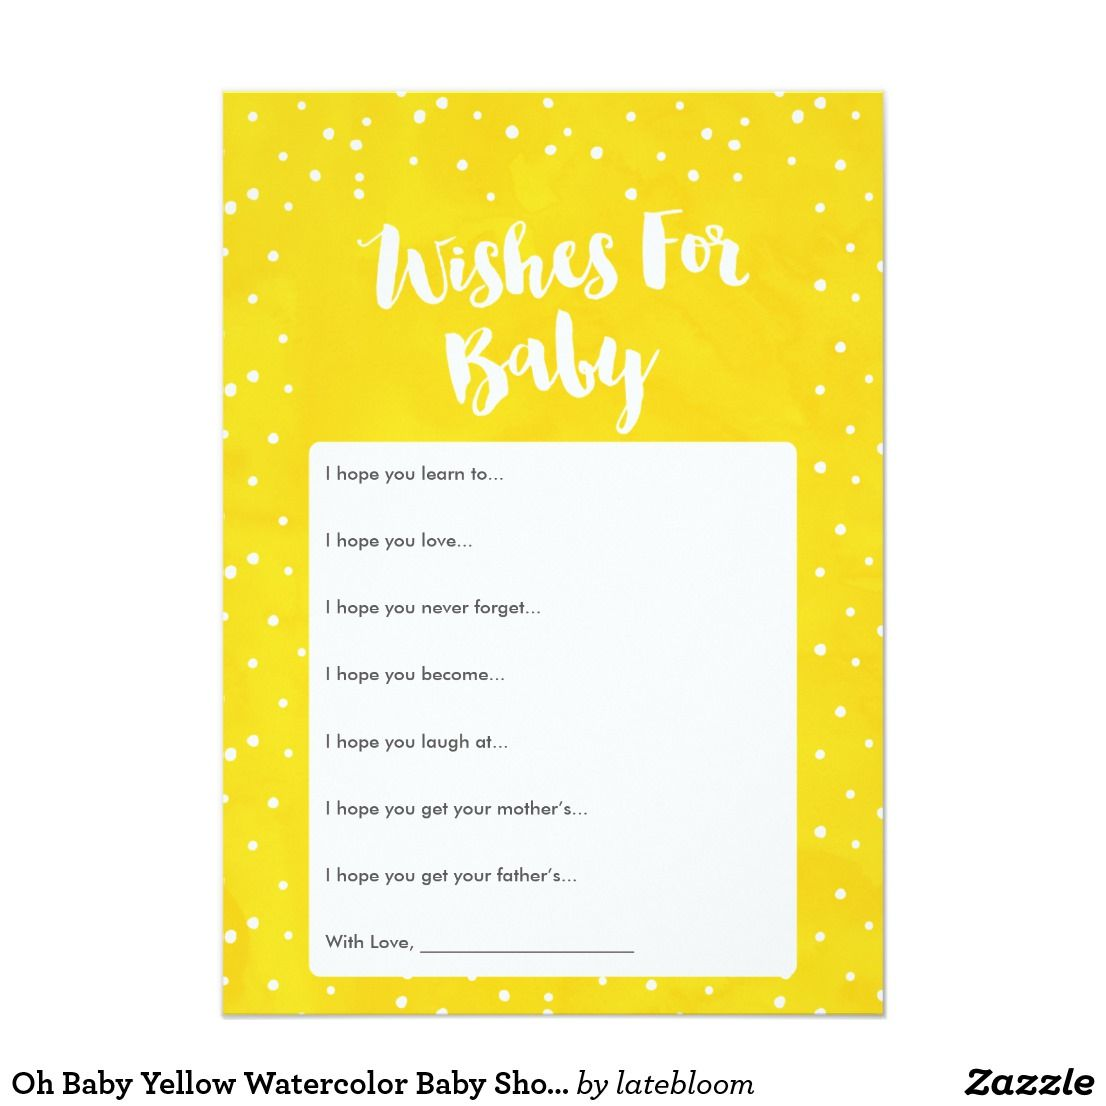 Full Size of Baby Shower:stylish Baby Shower Wishes Picture Inspirations Baby Shower Wishes Oh Baby Yellow Watercolor Baby Shower Wishes Card Yellow Baby Oh Baby Yellow Watercolor Baby Shower Wishes Card Have Fun At Your Baby Shower With An Adorable Yellow Baby Shower Wishes Card Have Your Guests Fill This